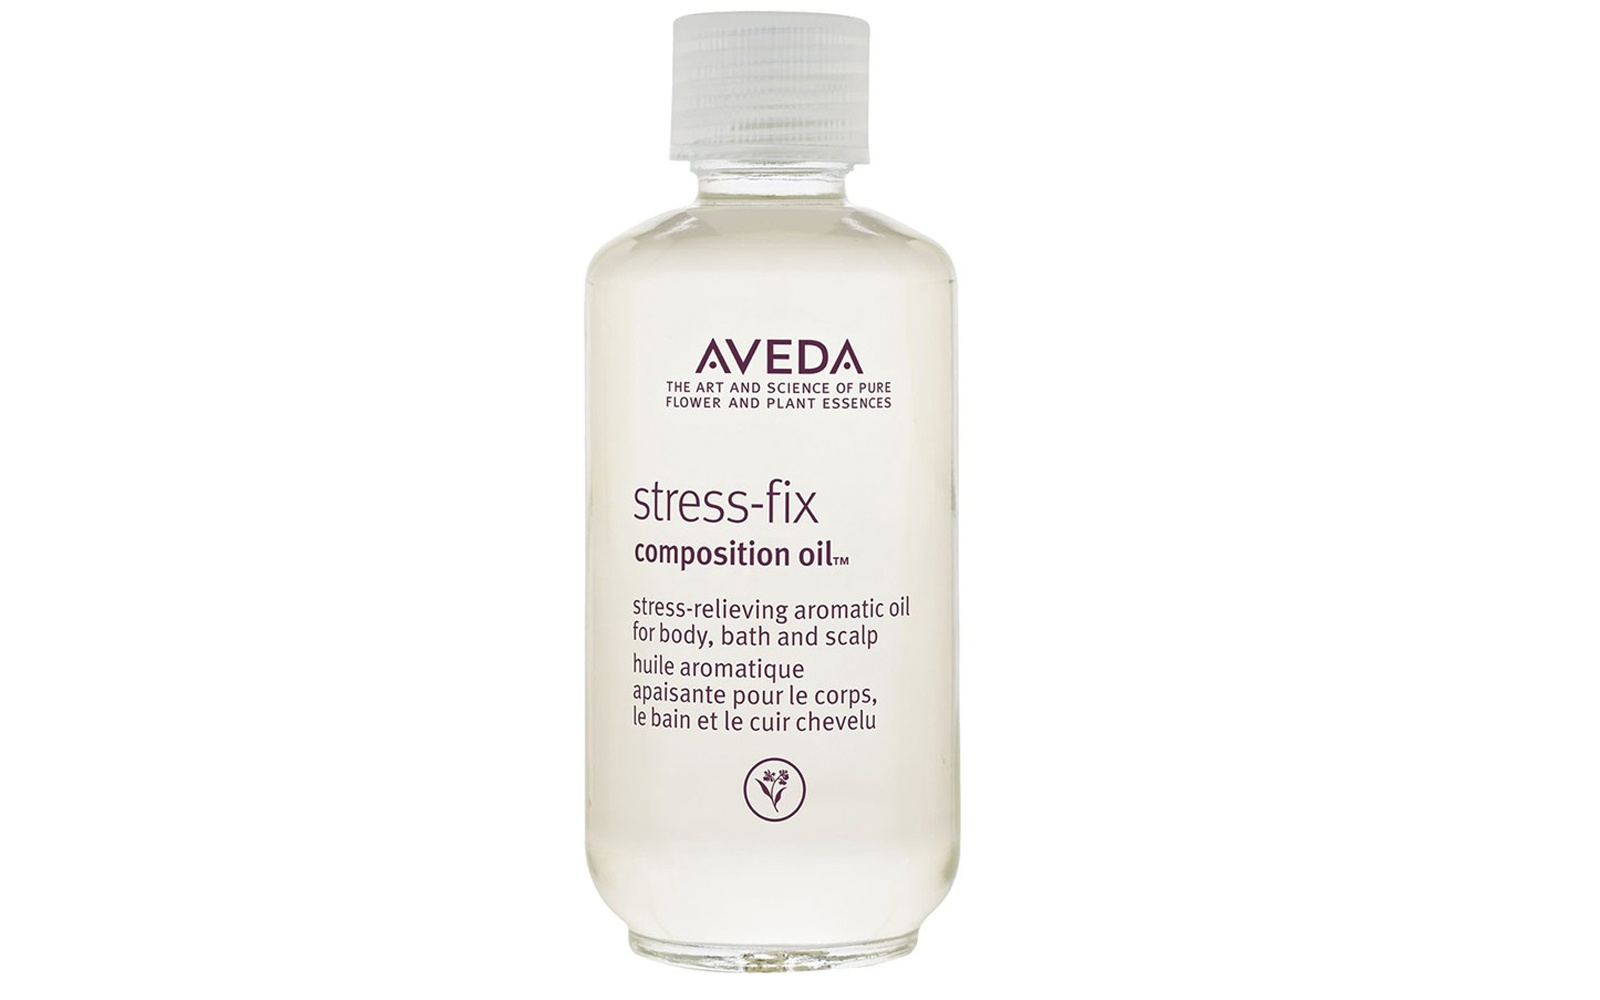 AVEDA0615-stress-oil.jpg